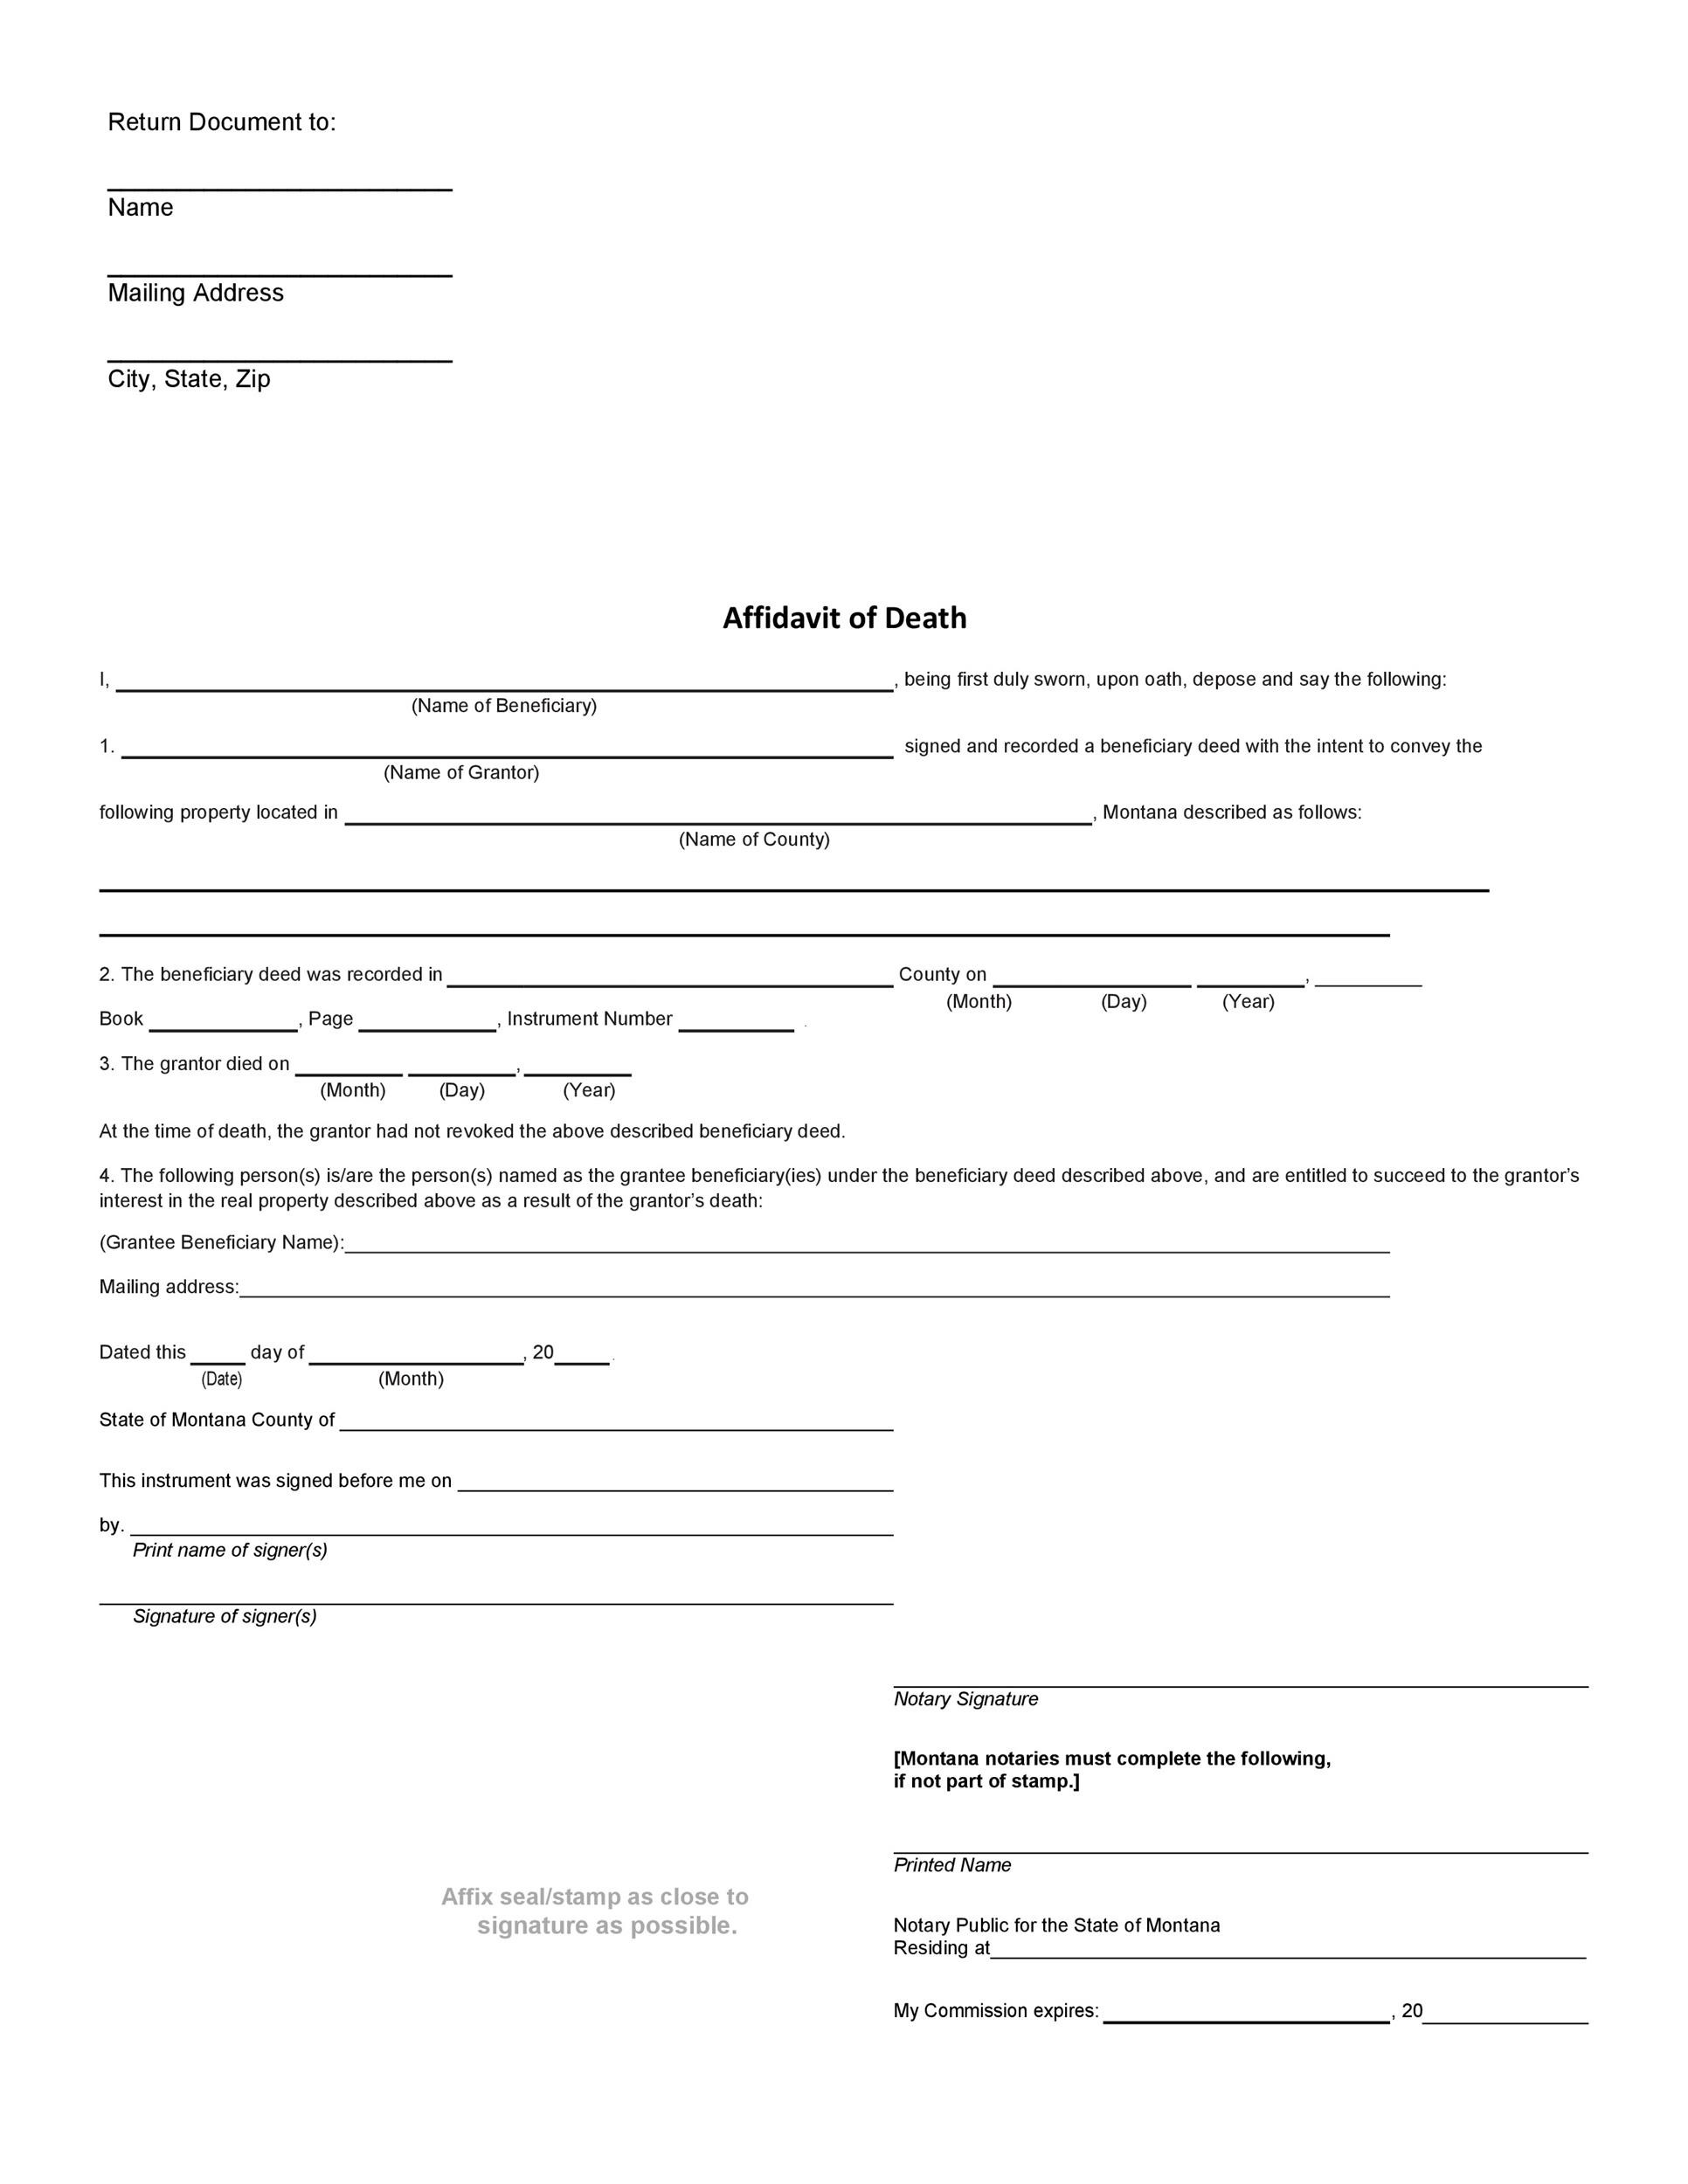 Free affidavit of death 11